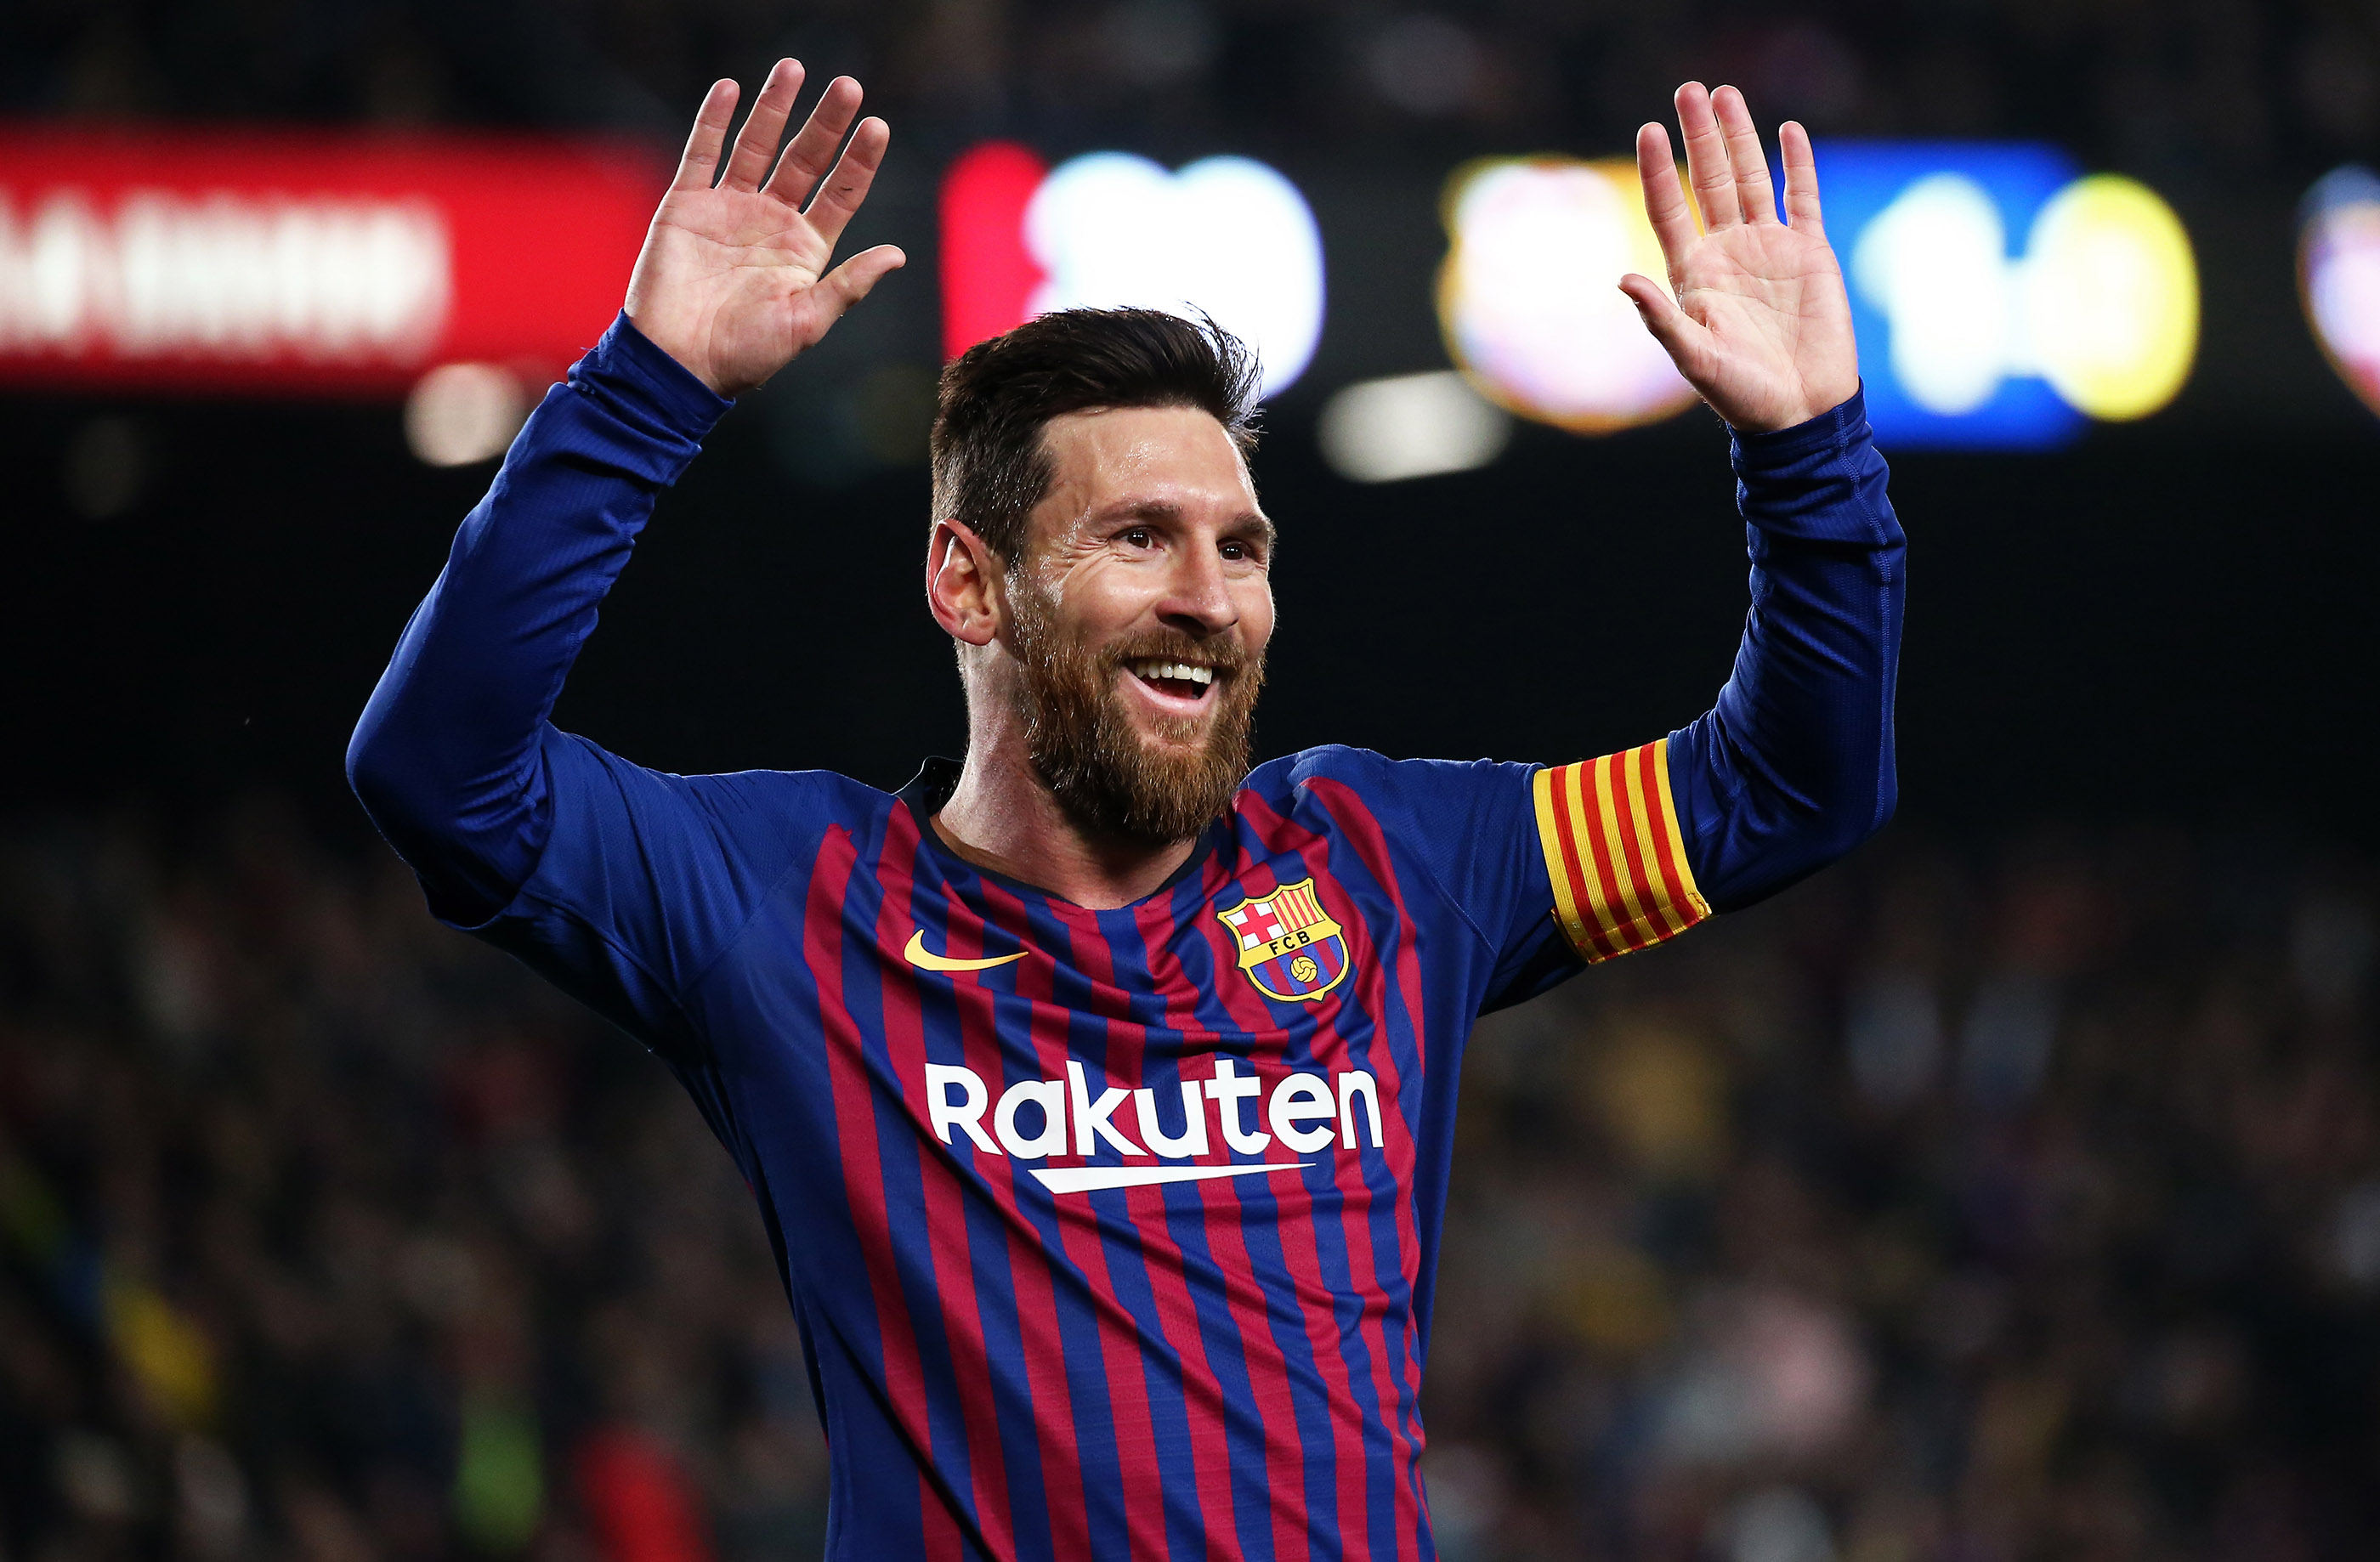 'I'm 69 and I've seen many players, but Messi is something else', says former Real Madrid boss - Bóng Đá